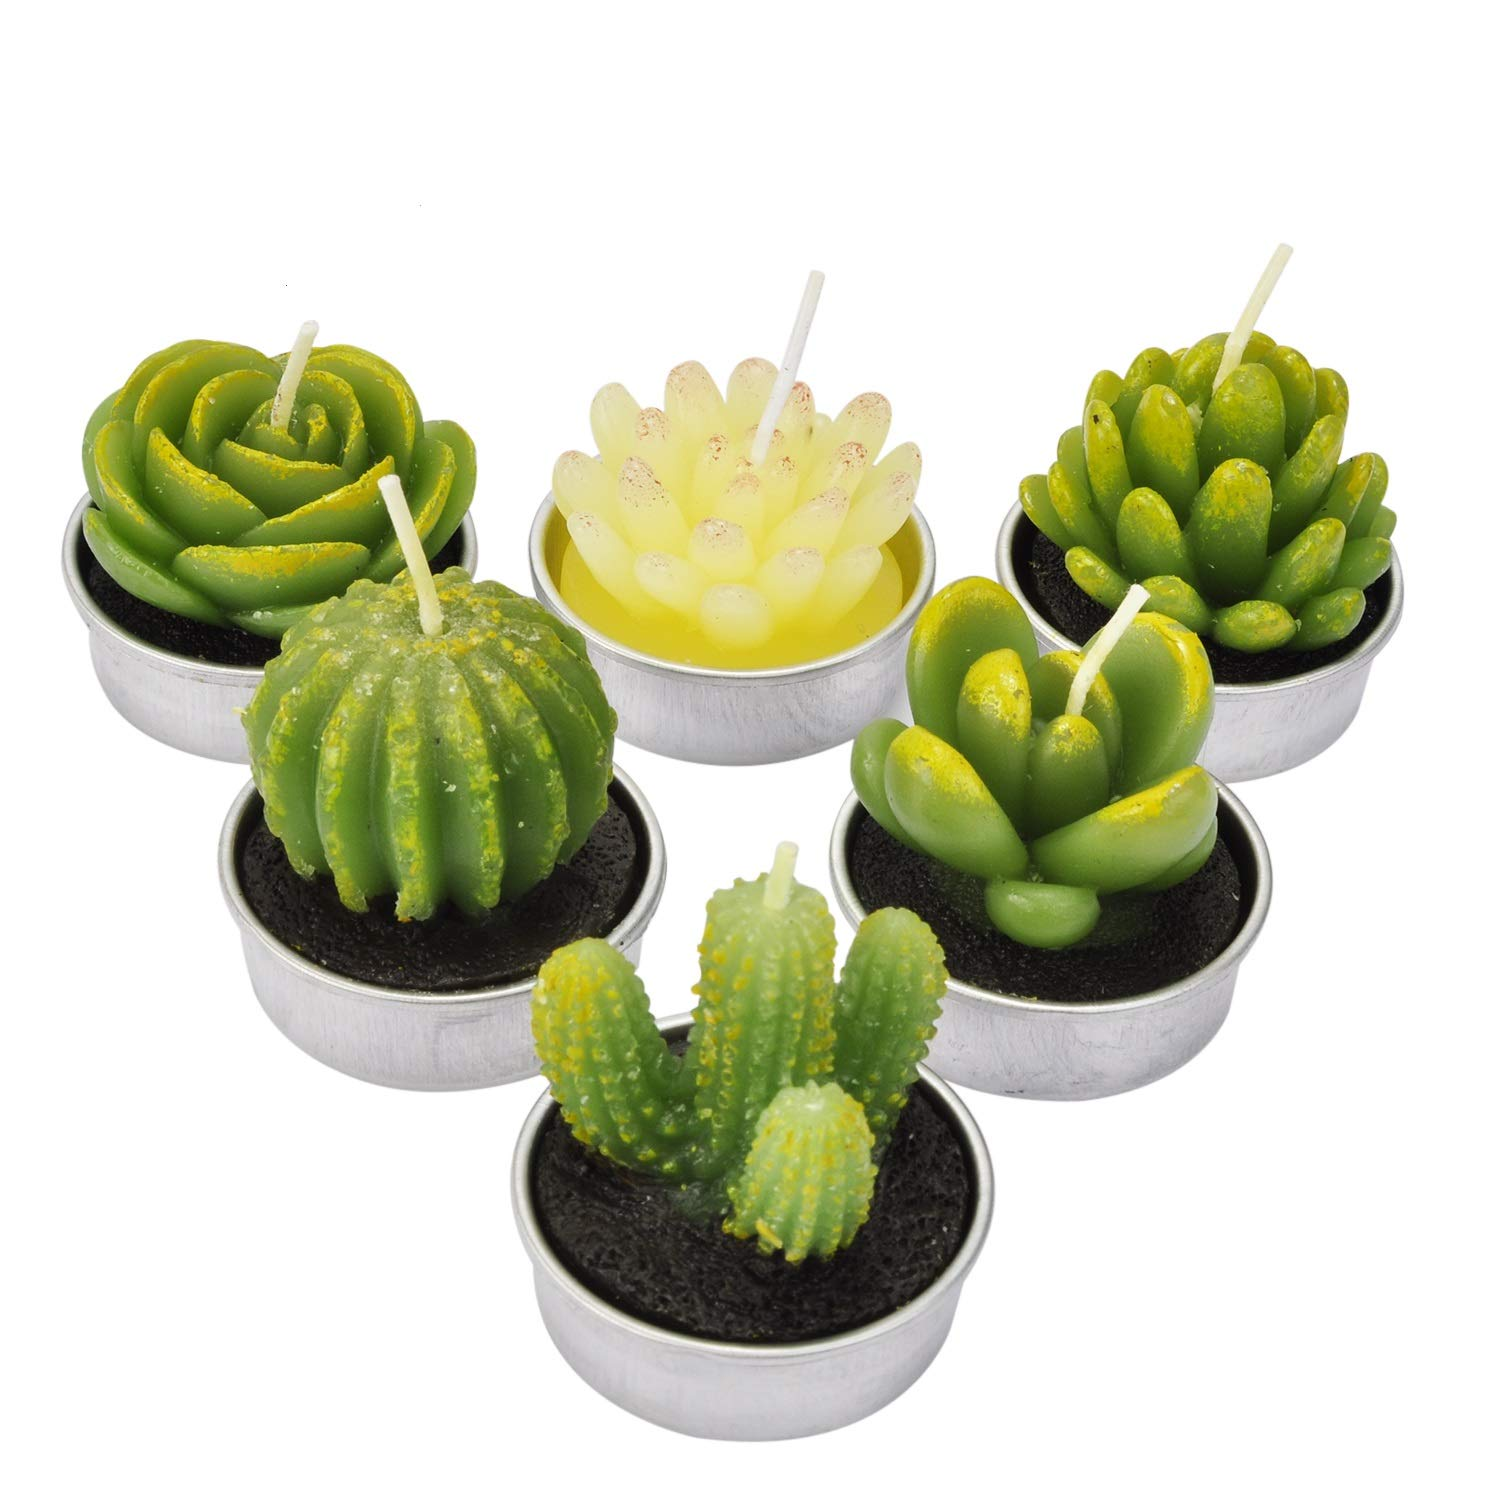 LA BELLEFÉE Cactus Tealight Candles Succulent Cactus Candles Gift Set Handmade Delicate Smokeless Cute Green Plant for Party Wedding Spa Home Decoration Gifts 12 Packs